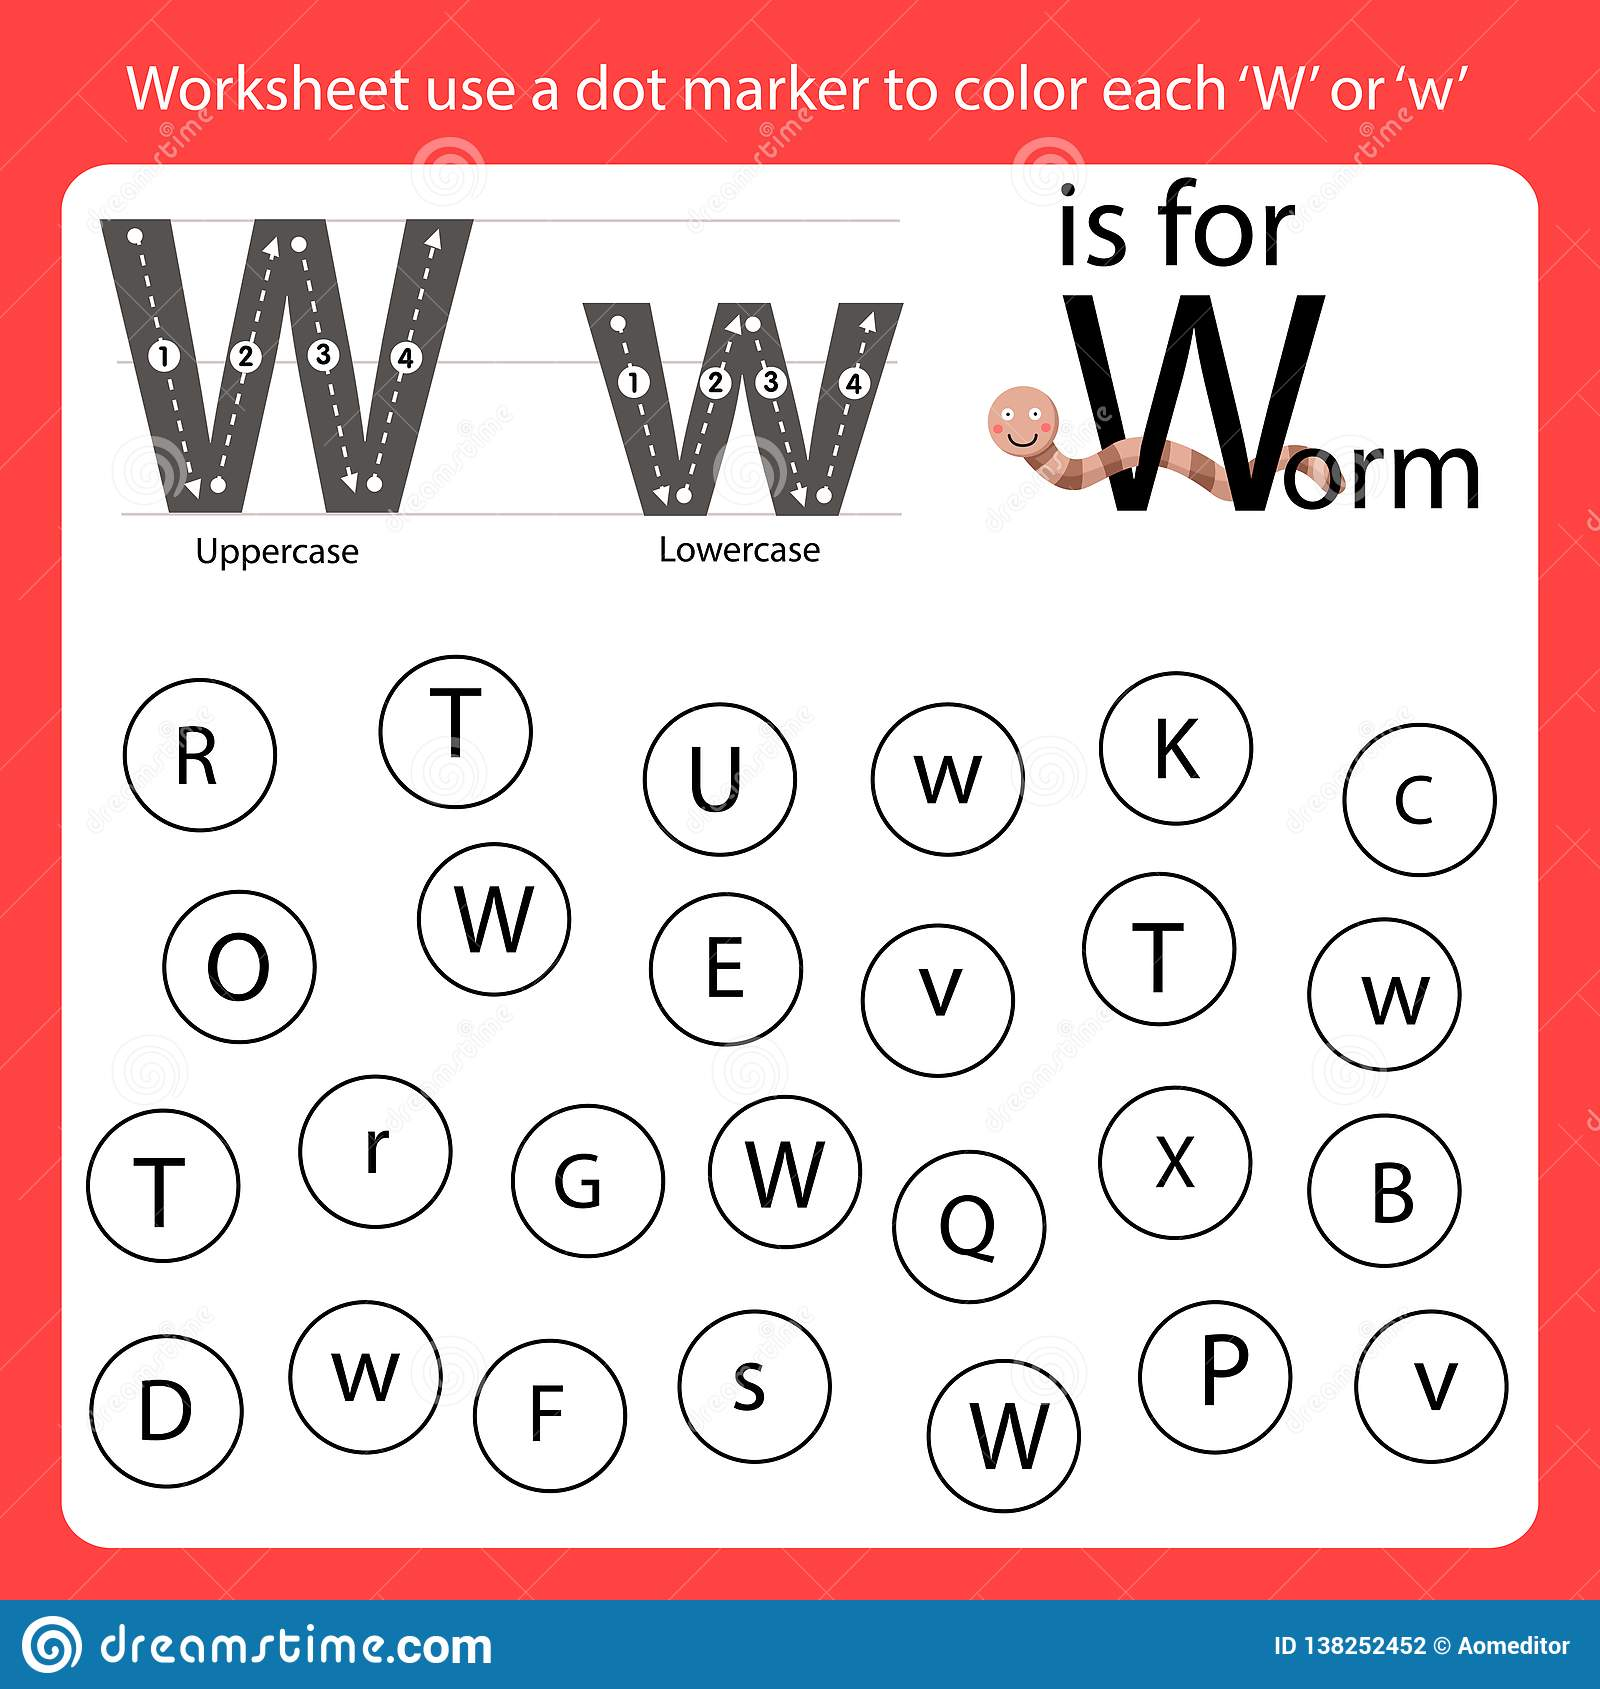 Find The Letter Worksheet Use A Dot Marker To Color Each W